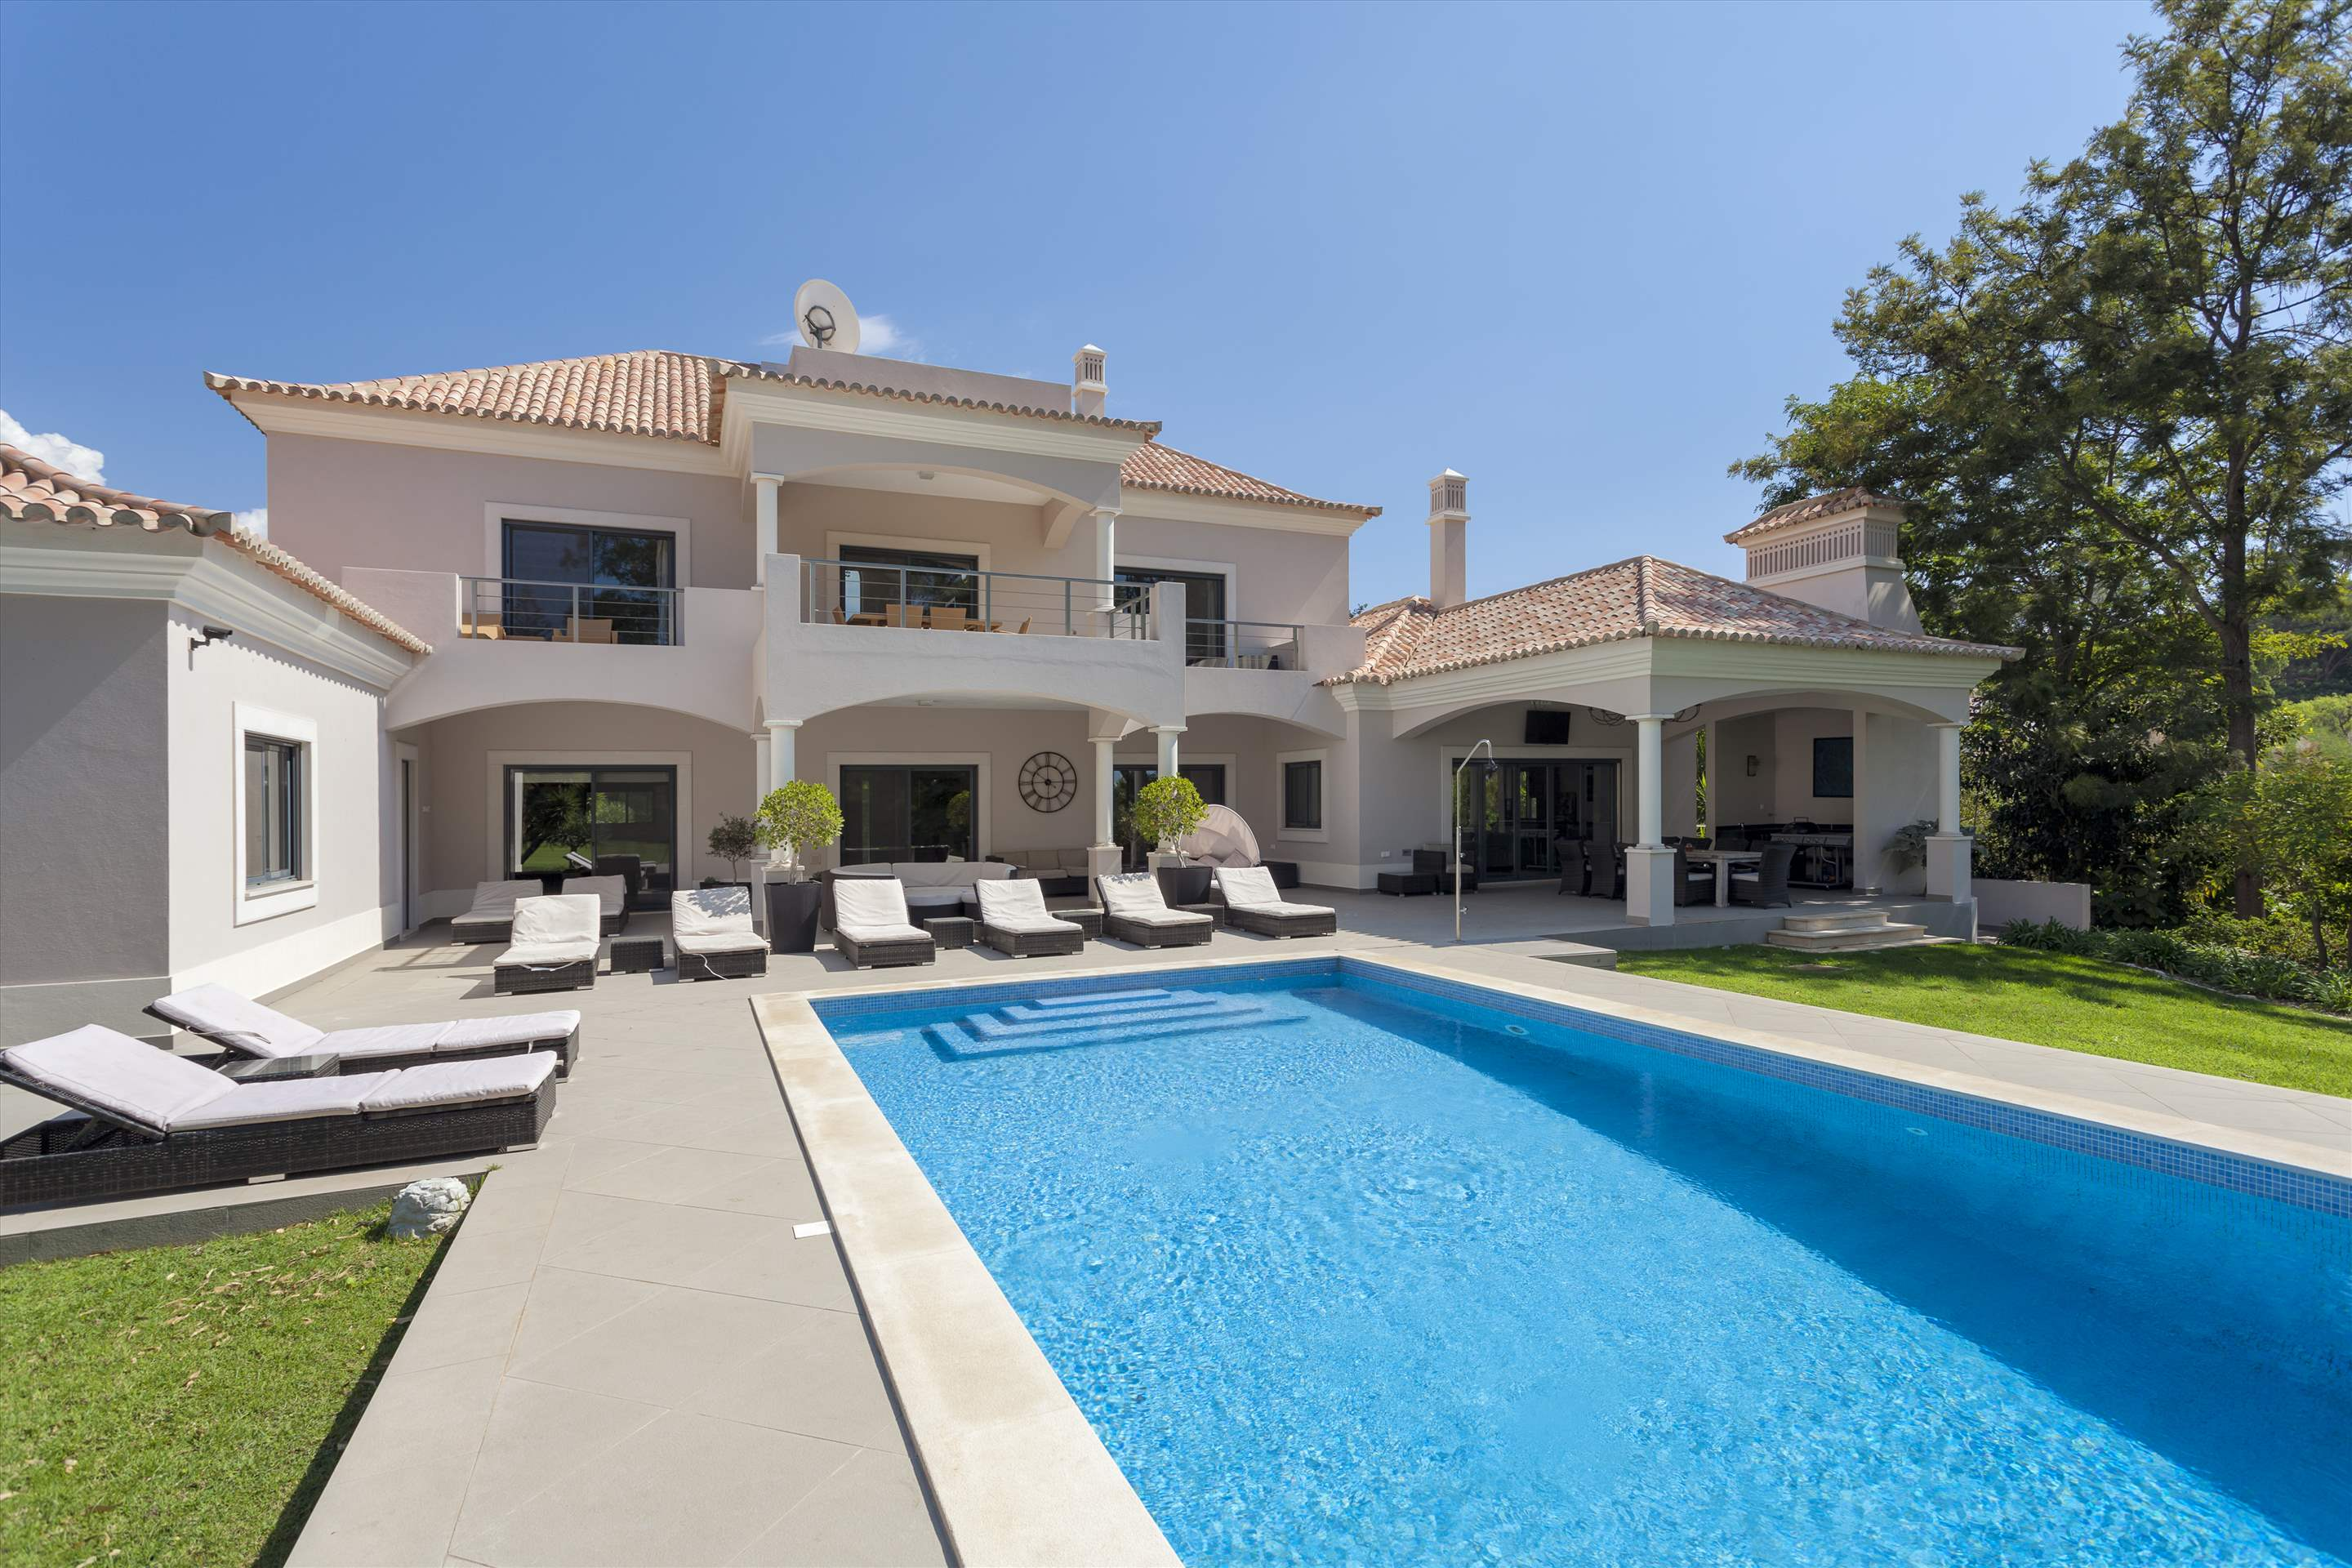 Villa Mar Azul, 5 bedroom villa in Vale do Lobo, Algarve Photo #4